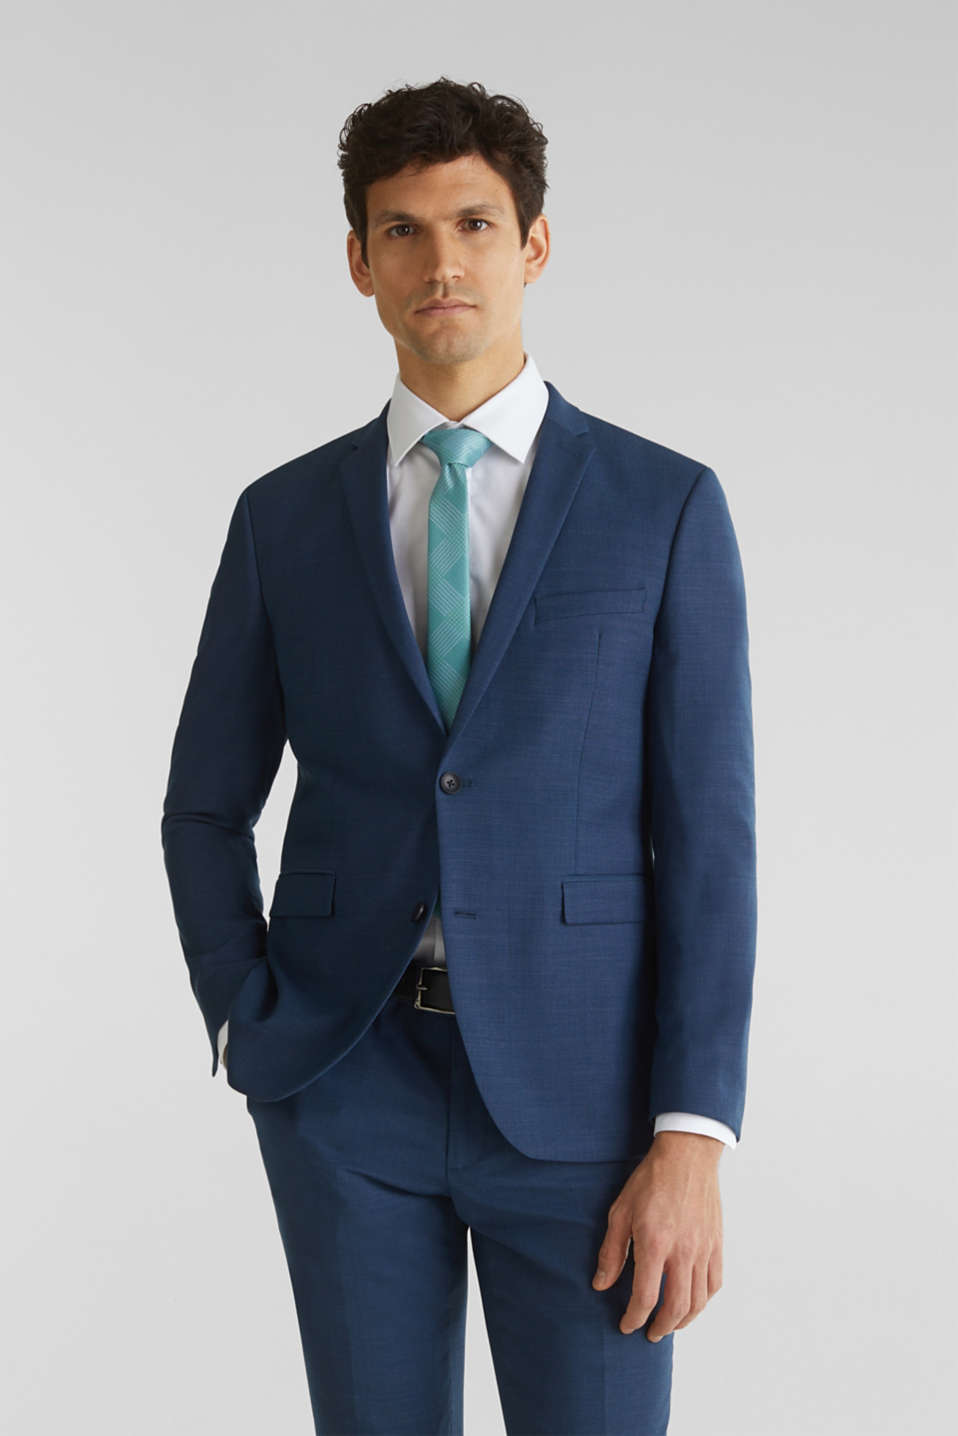 Esprit - BLUE WOOL mix + match: colbert